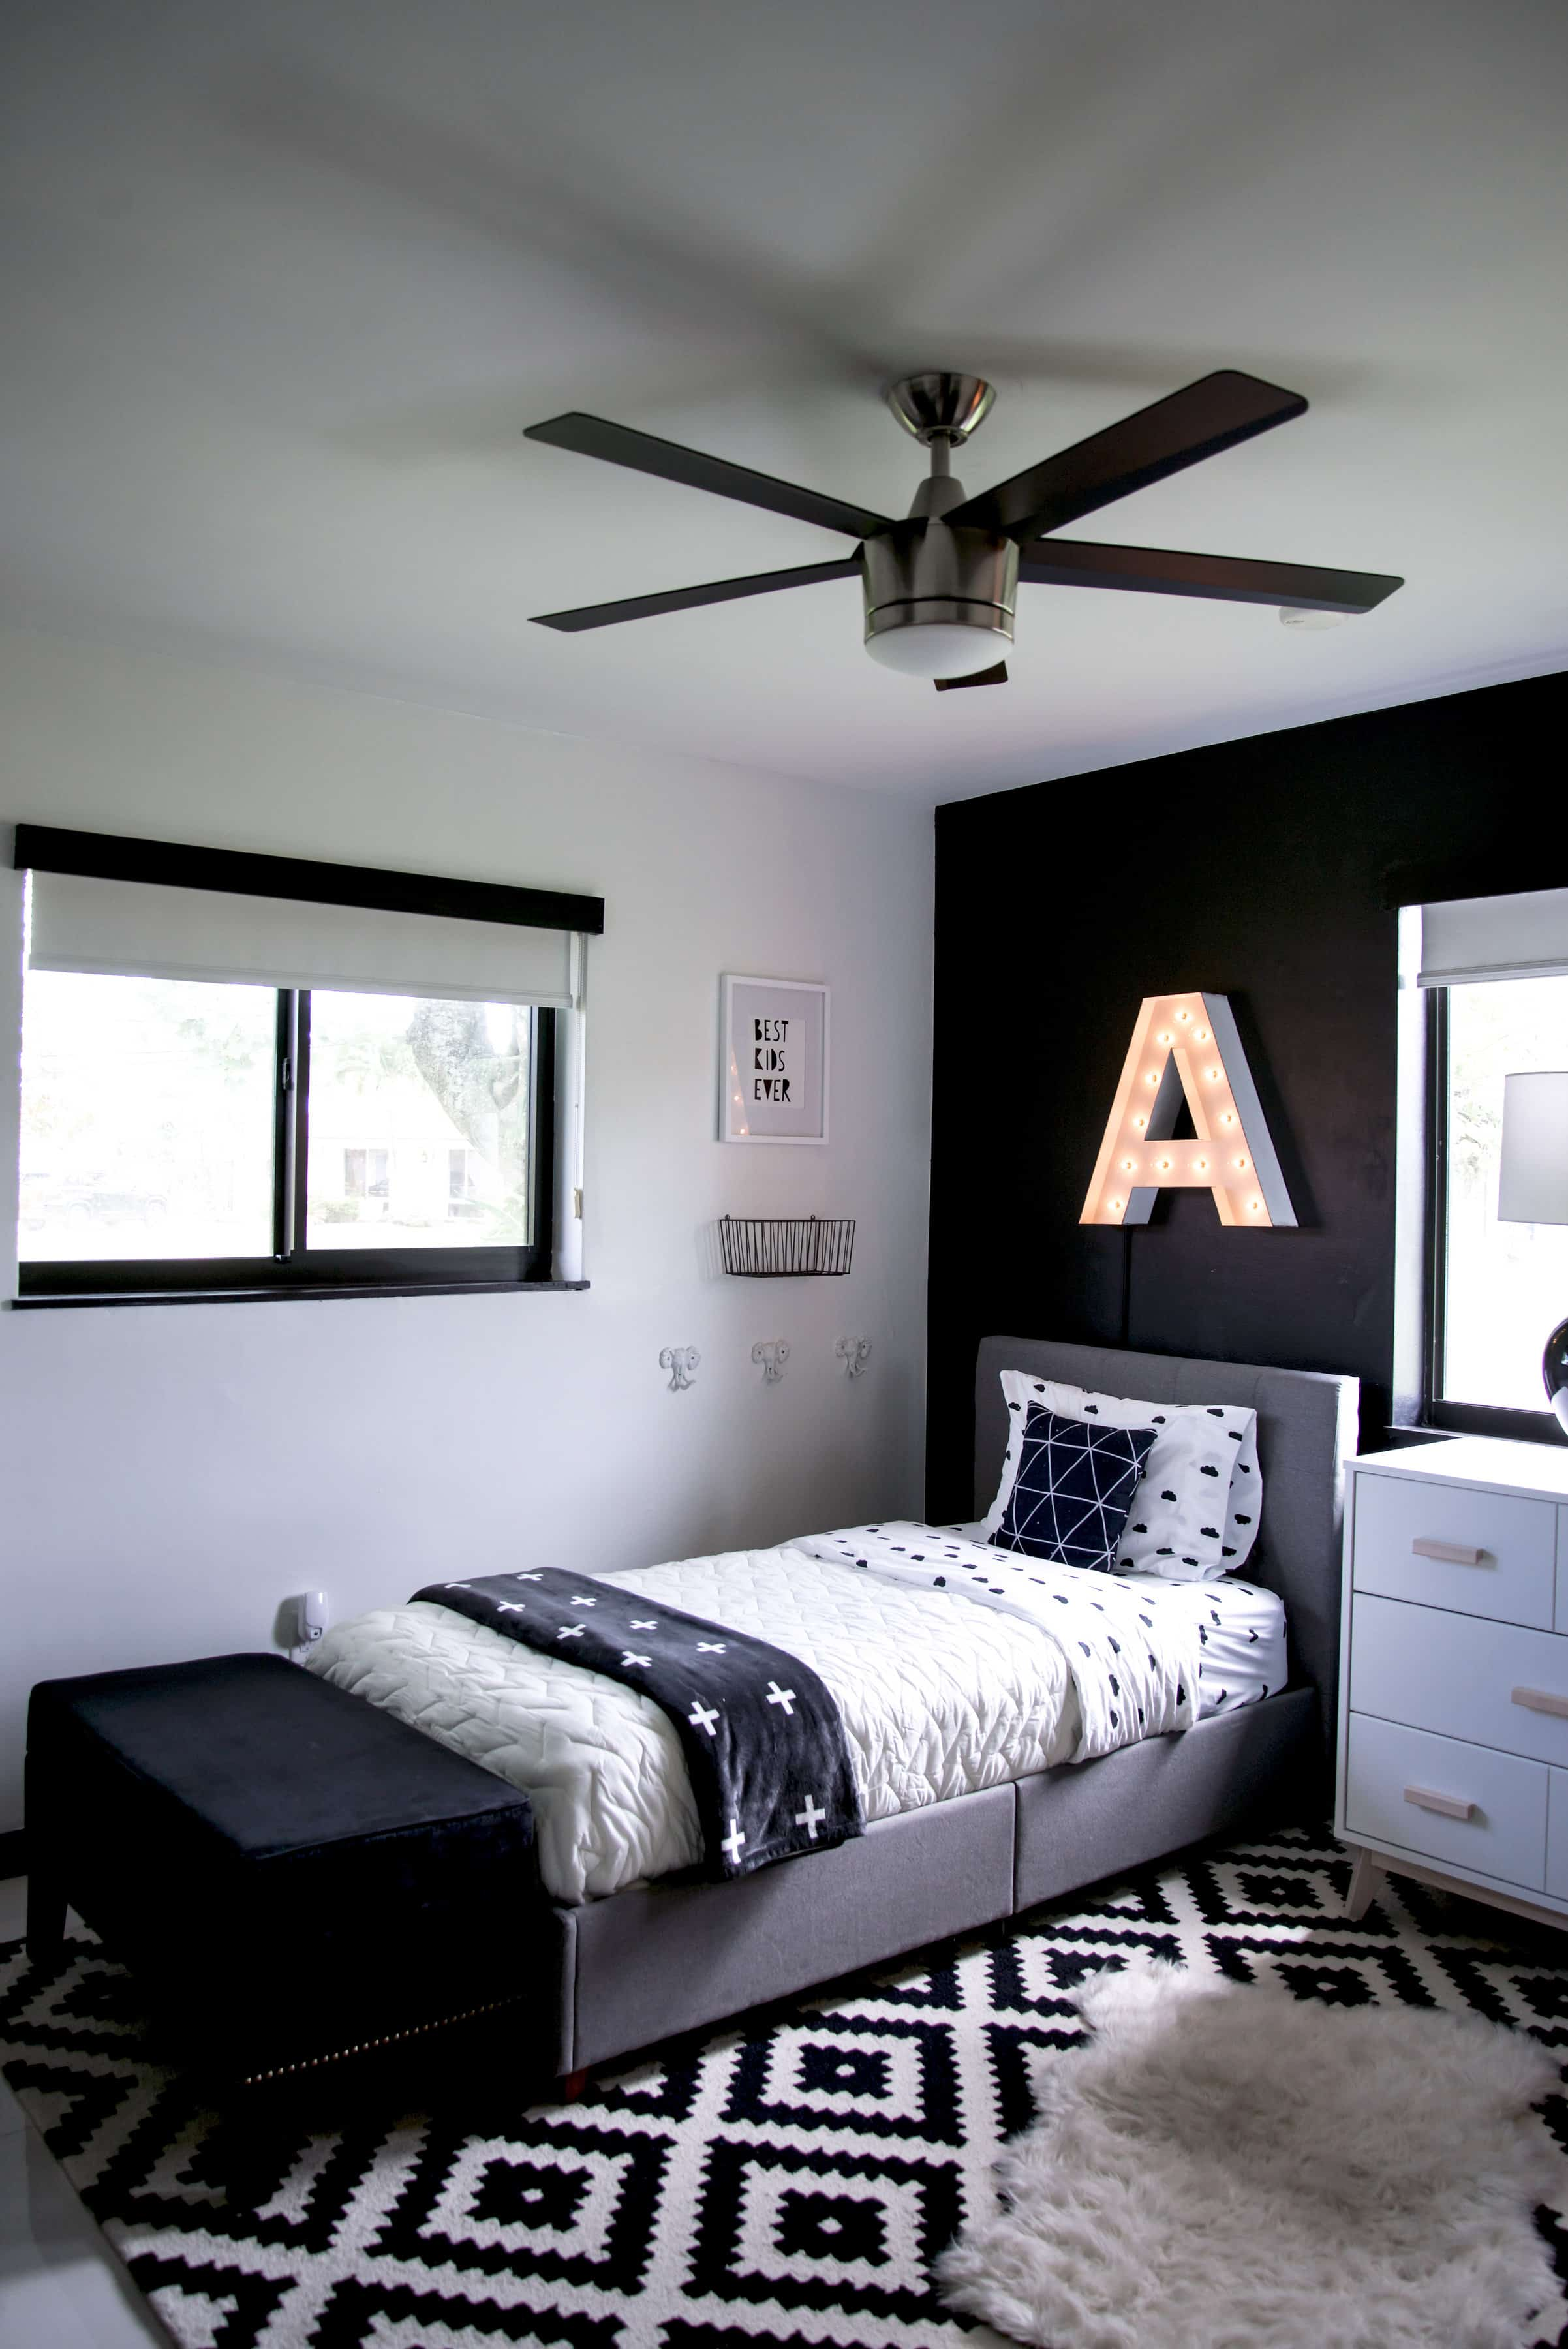 for size ceiling lamp fan lights bedroom furniture light girl ideas small full with blades idea bed false kids fixtures children room ceilings rooms boys childrens of